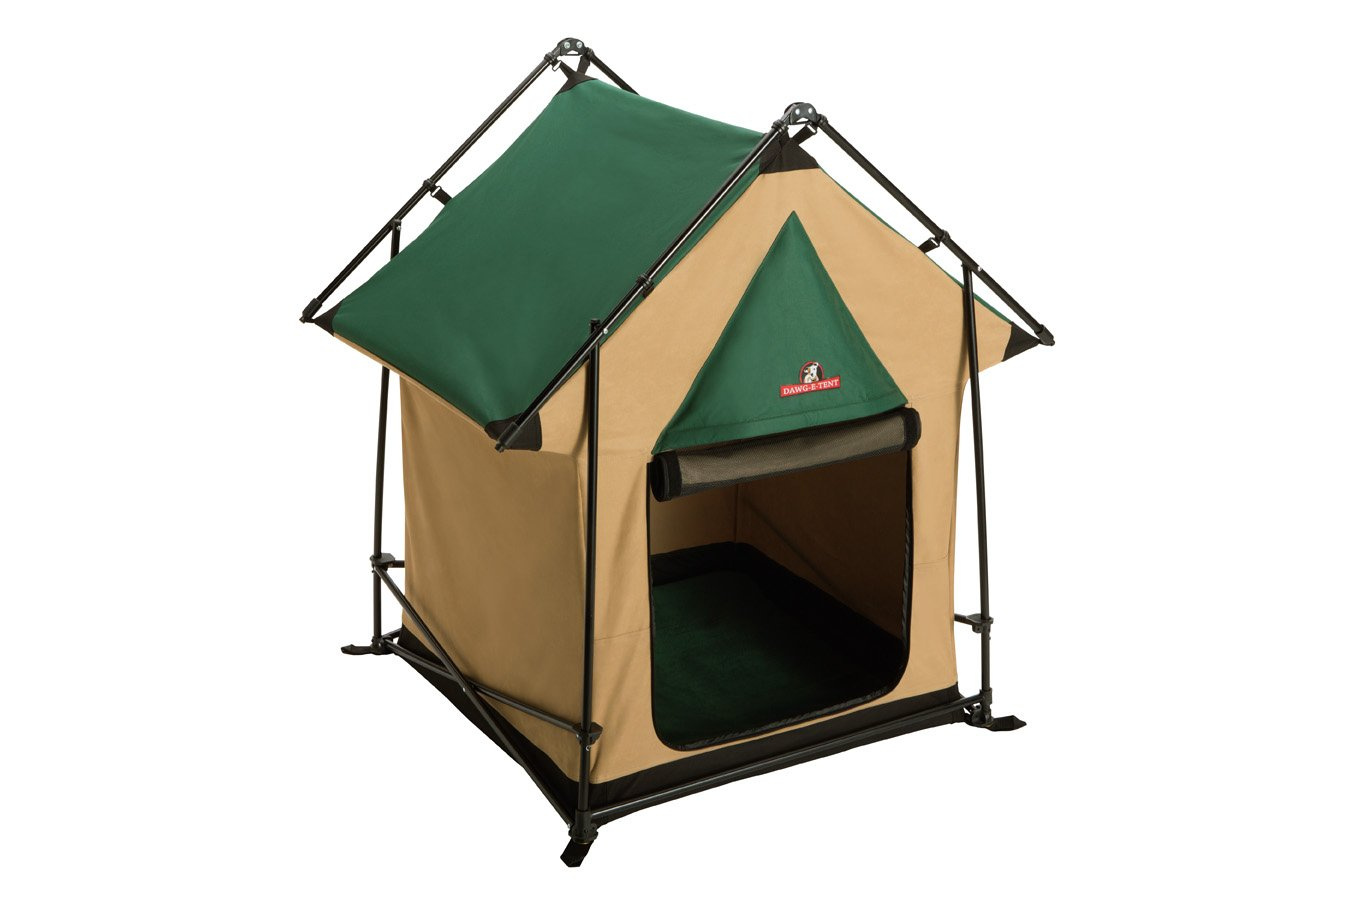 Amazon.com  Lucky Dog Medium Dawg-e-Tent 24 Lx24 Wx35 H  Dog Houses  Pet Supplies  sc 1 st  Amazon.com & Amazon.com : Lucky Dog Medium Dawg-e-Tent 24